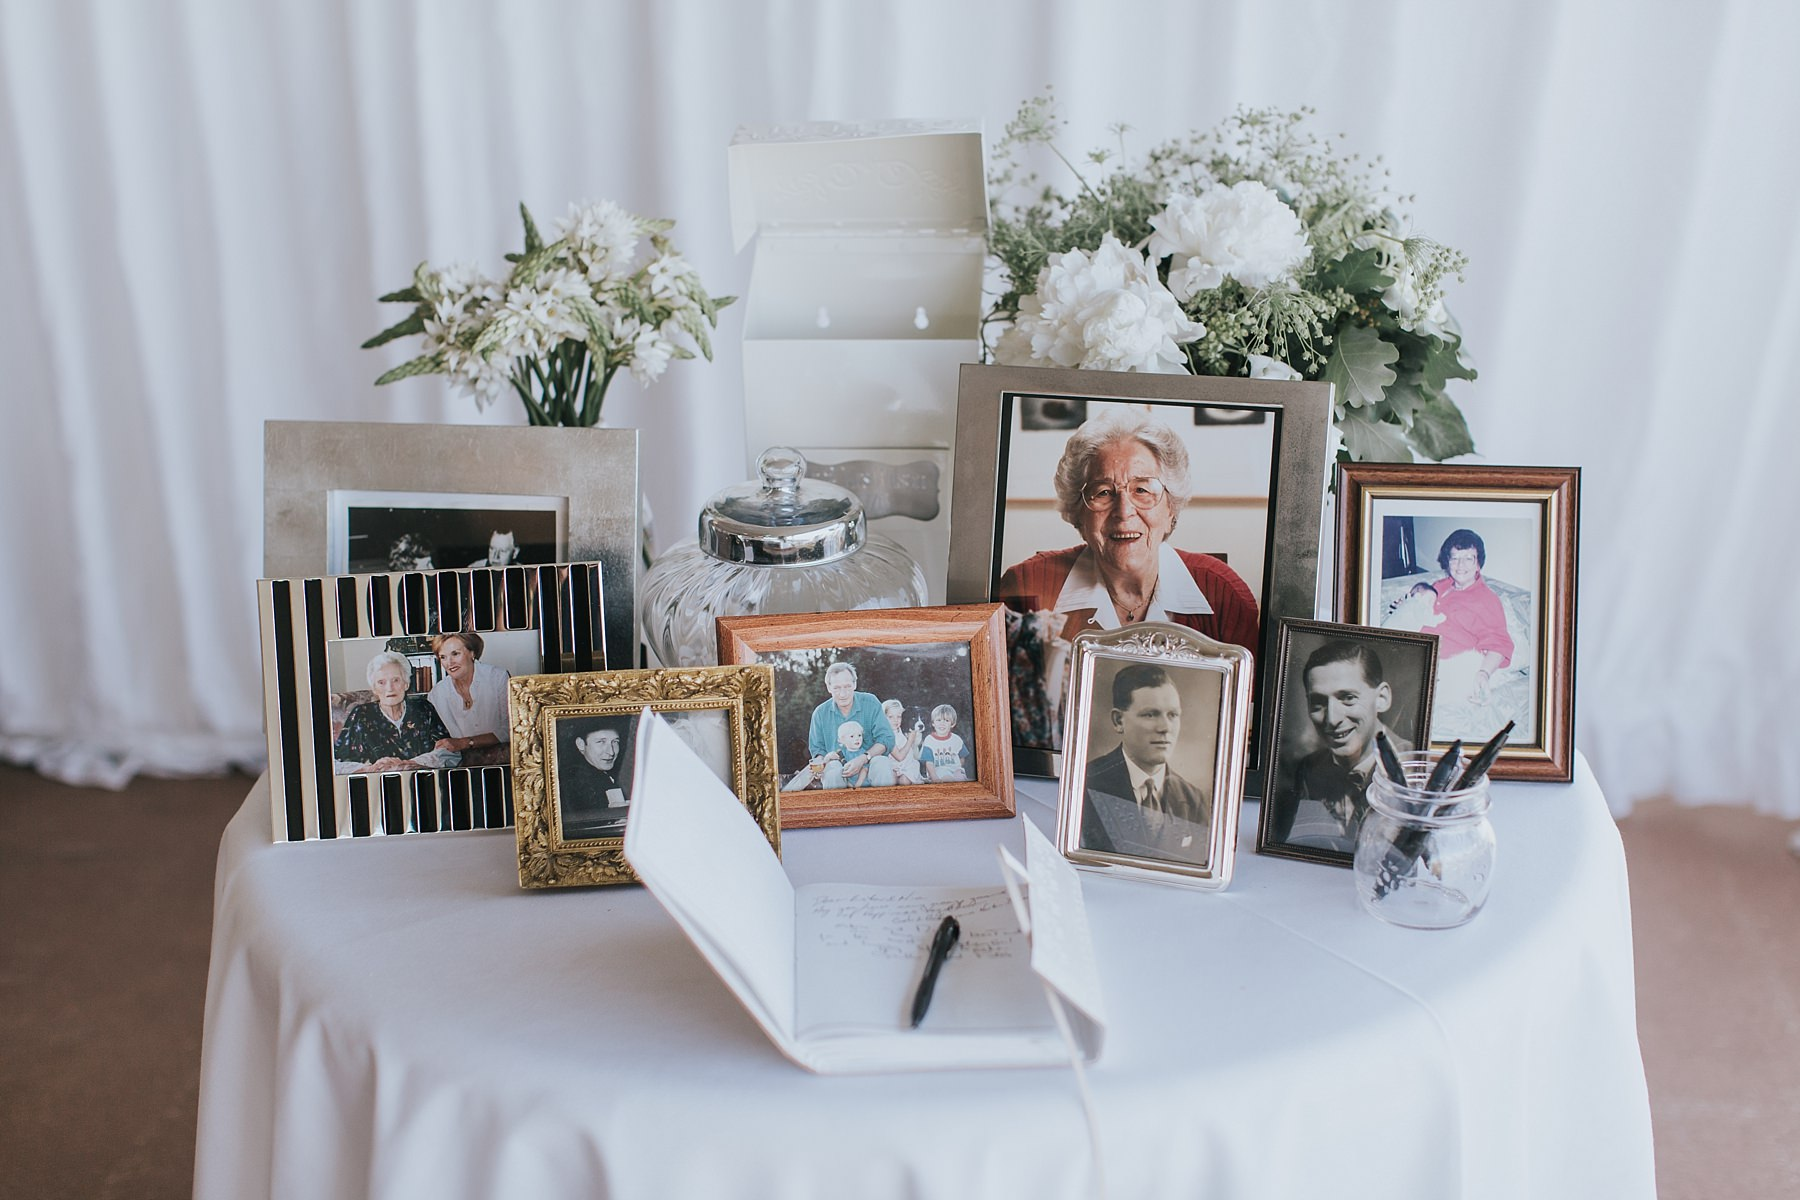 grandparents framed photos at wedding reception